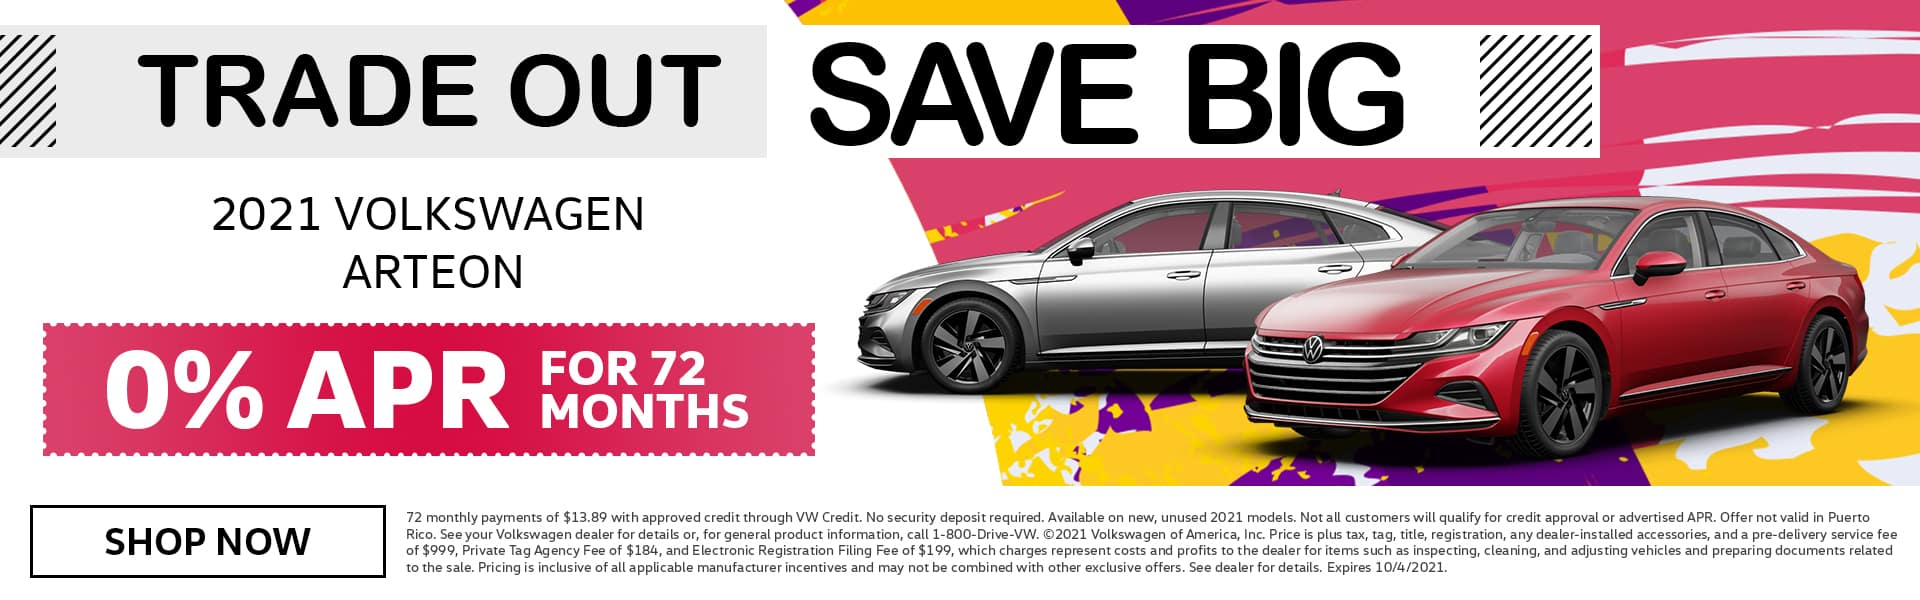 Trade Out Save Big | 2021 Volkswagen Arteon | 0% APR For 72 Months